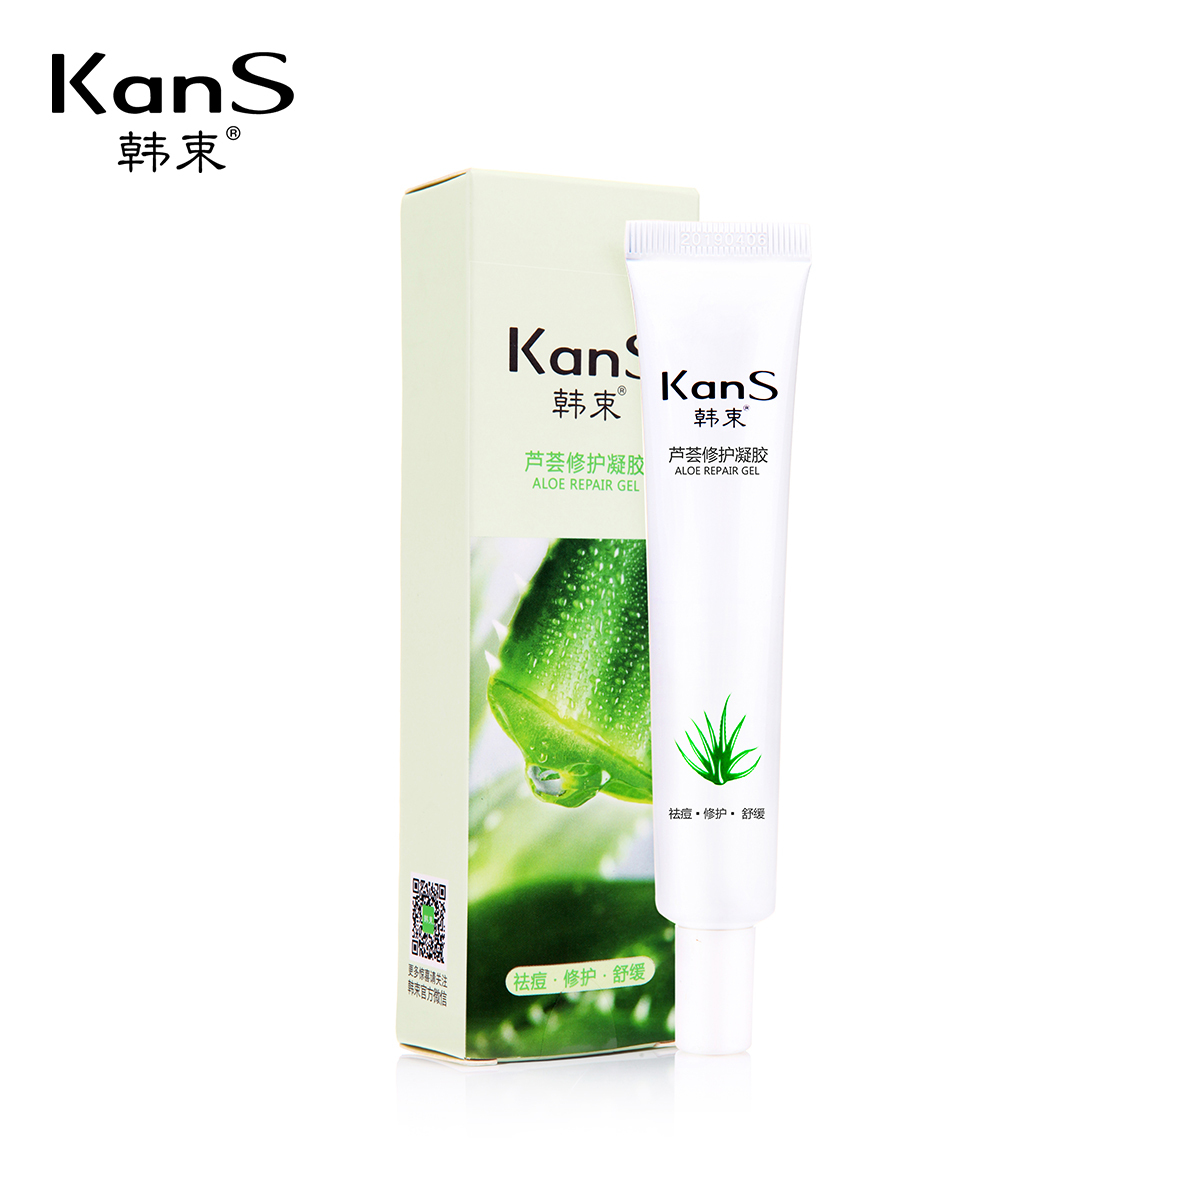 Aloe vera gel 35g Han beam moisturizing fade the scar Repairing Mask for face